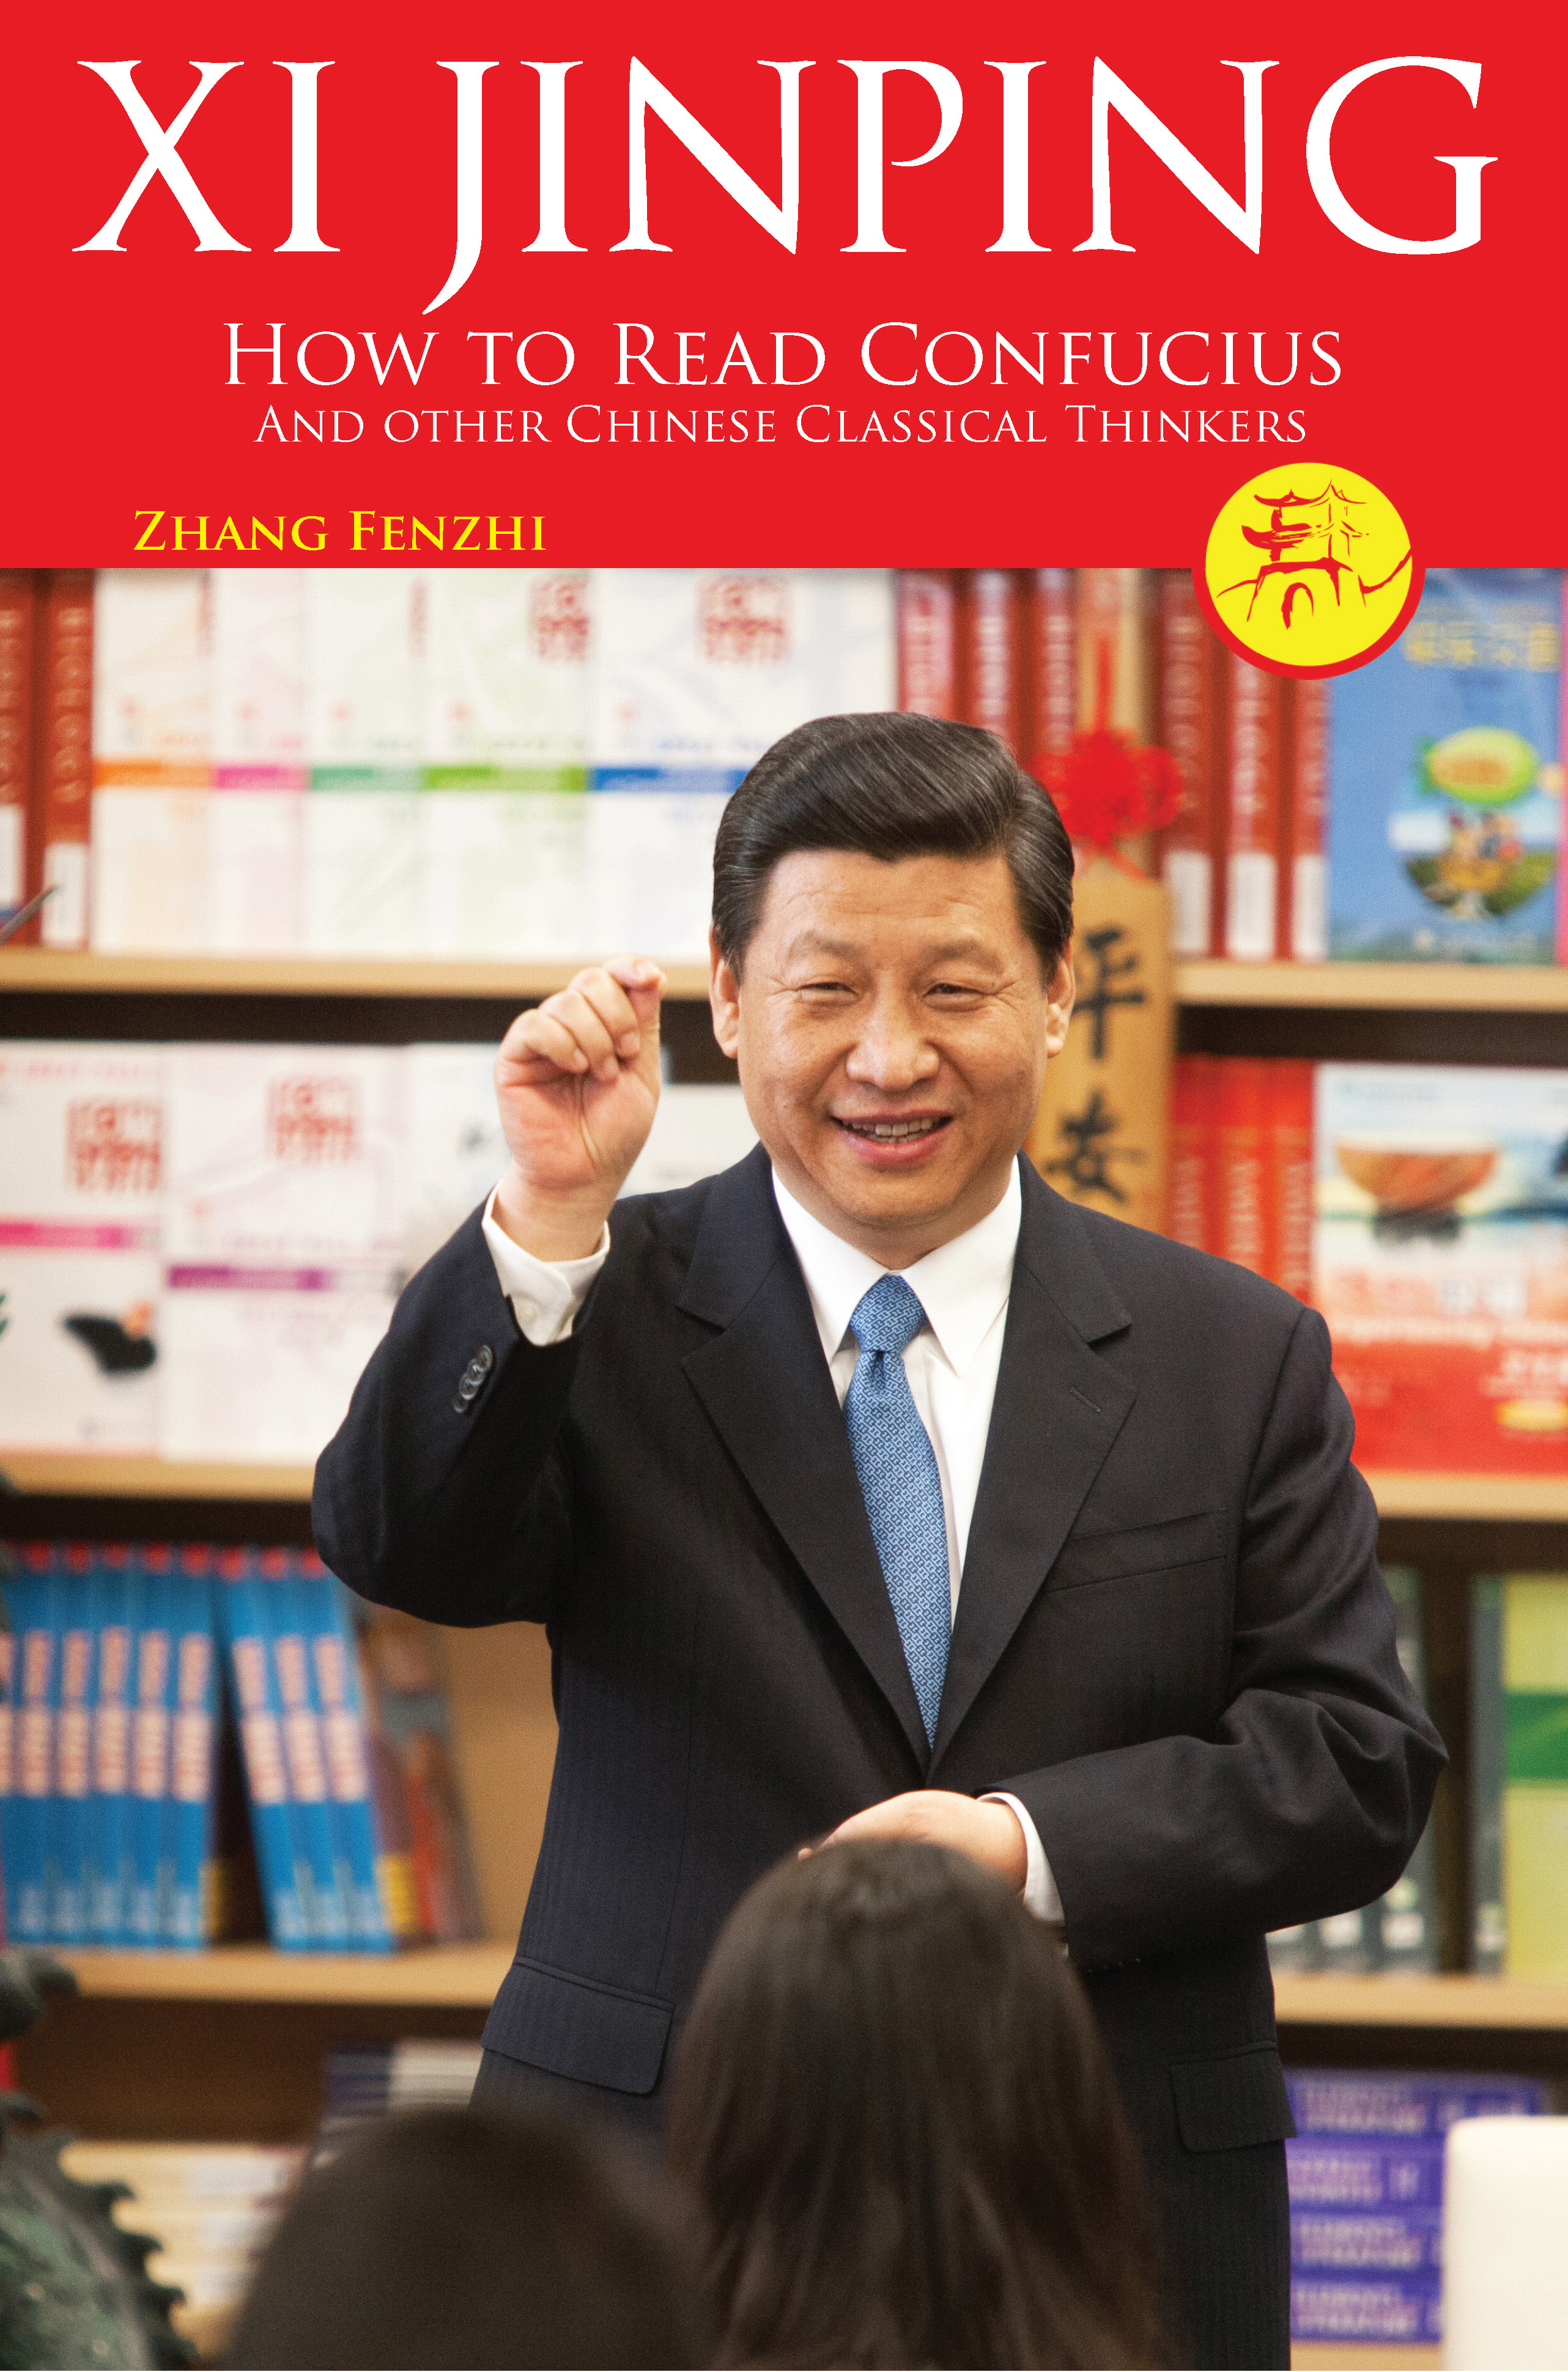 Xi Jinping: How to Read Confucius and Other Chinese Classical Thinkers